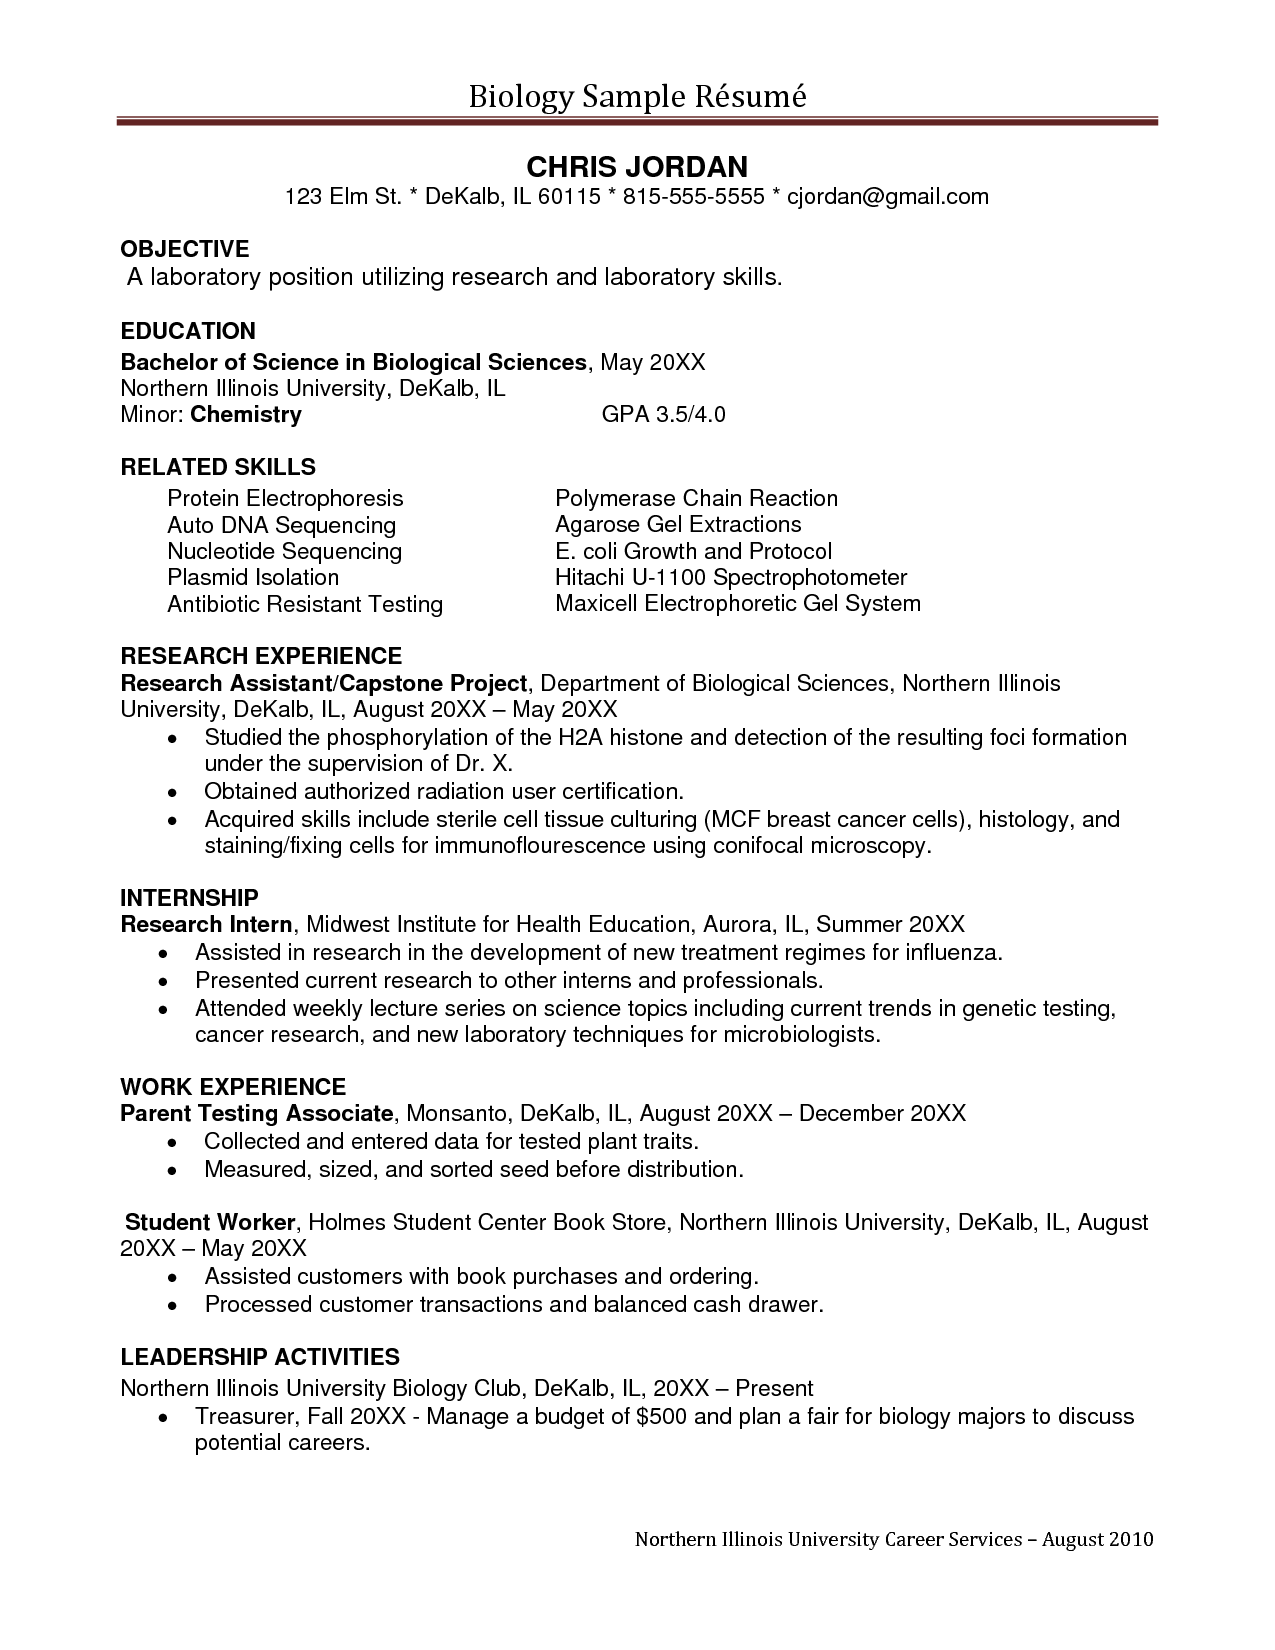 Current Resume Templates Sample Undergraduate Research Assistant Resume Sampleĺ